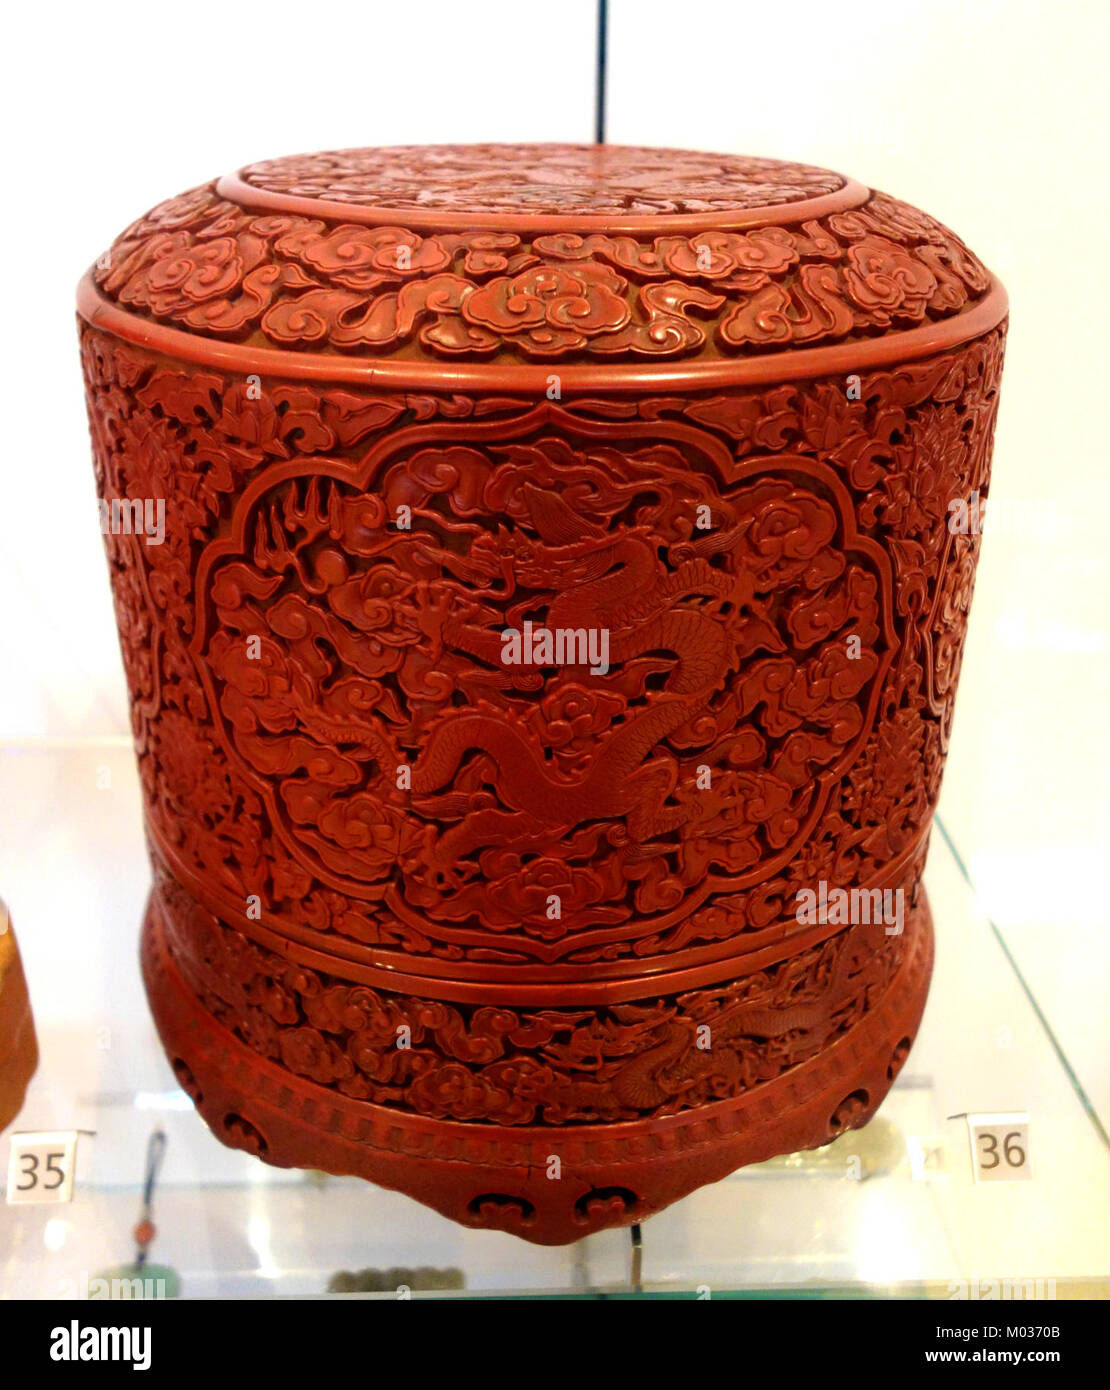 box, china, ming-dynastie, yanglo periode, 1403-1424, holz, lack